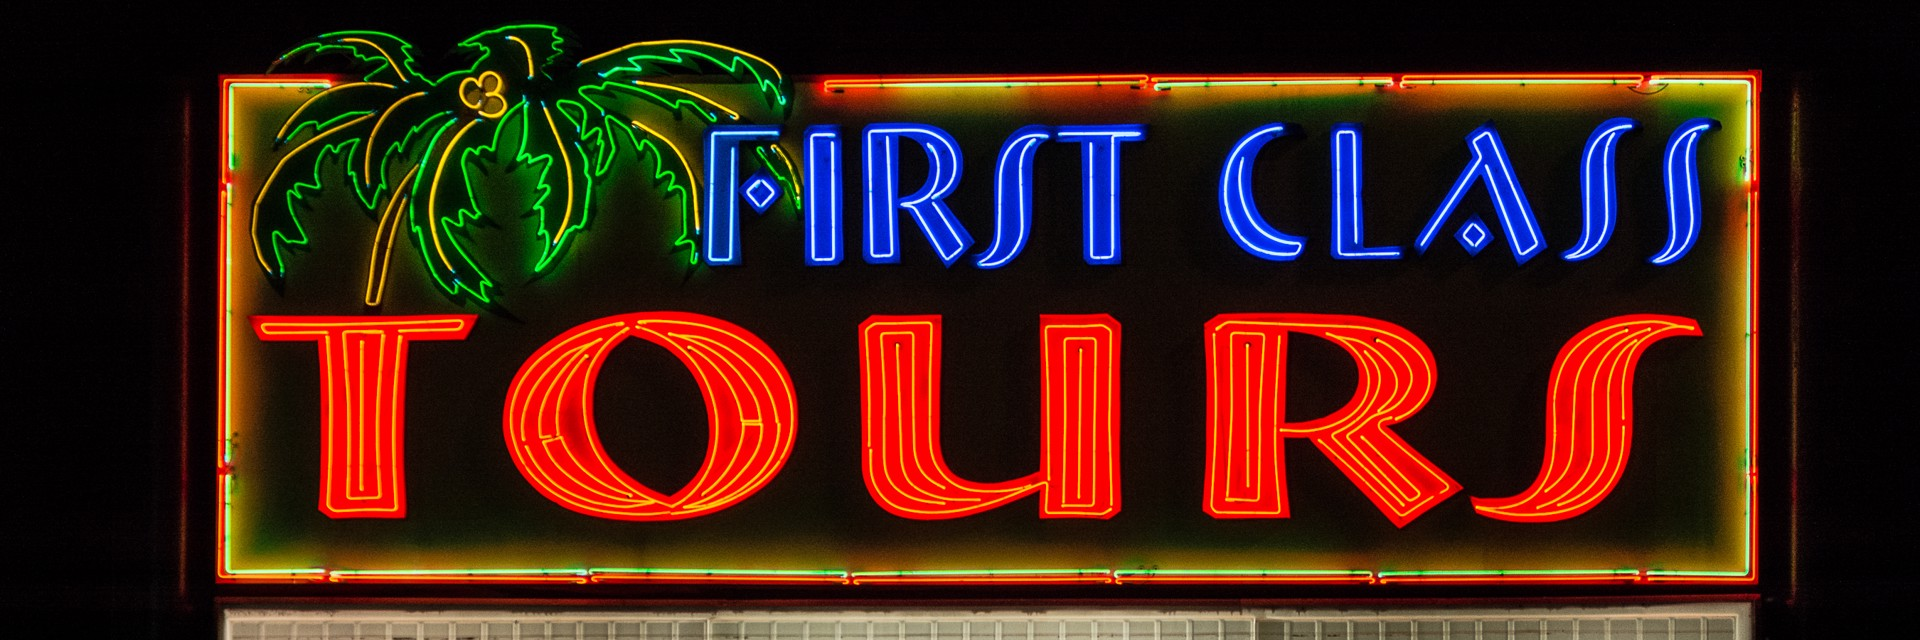 First Class Tours by James C. Ritchie